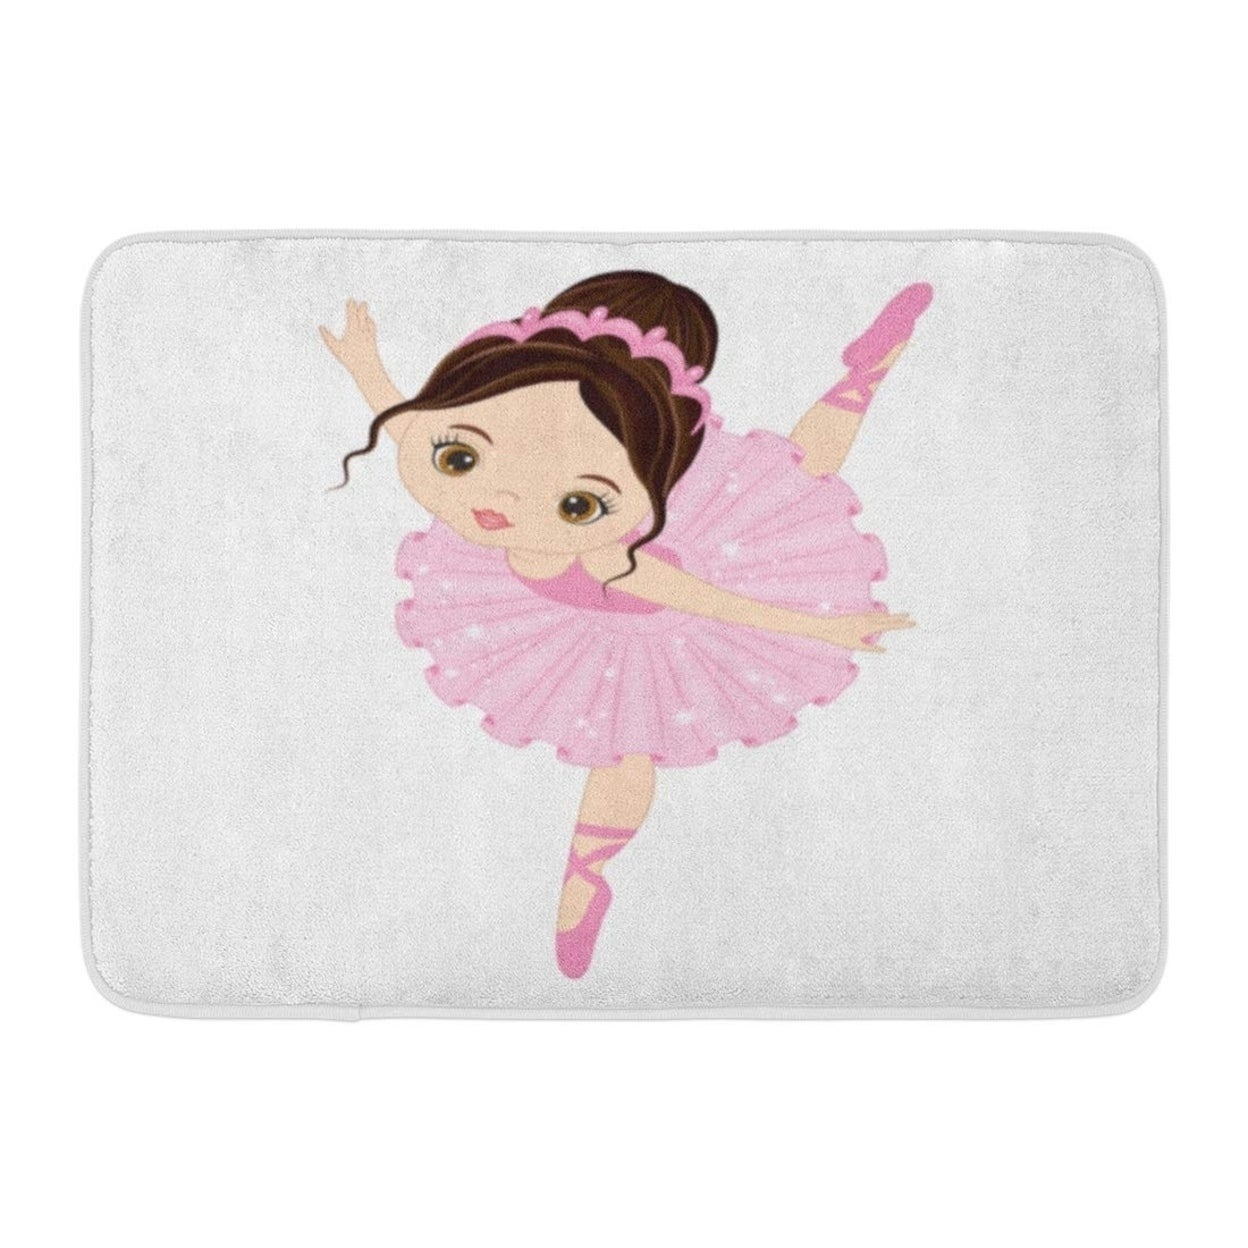 Shop Ballet Cute Little Ballerina Dancing Girl In Pink Dress Dancer Cartoon Doormat Floor Rug Bath Mat 23 6x15 7 Inch Multi Overstock 31775112